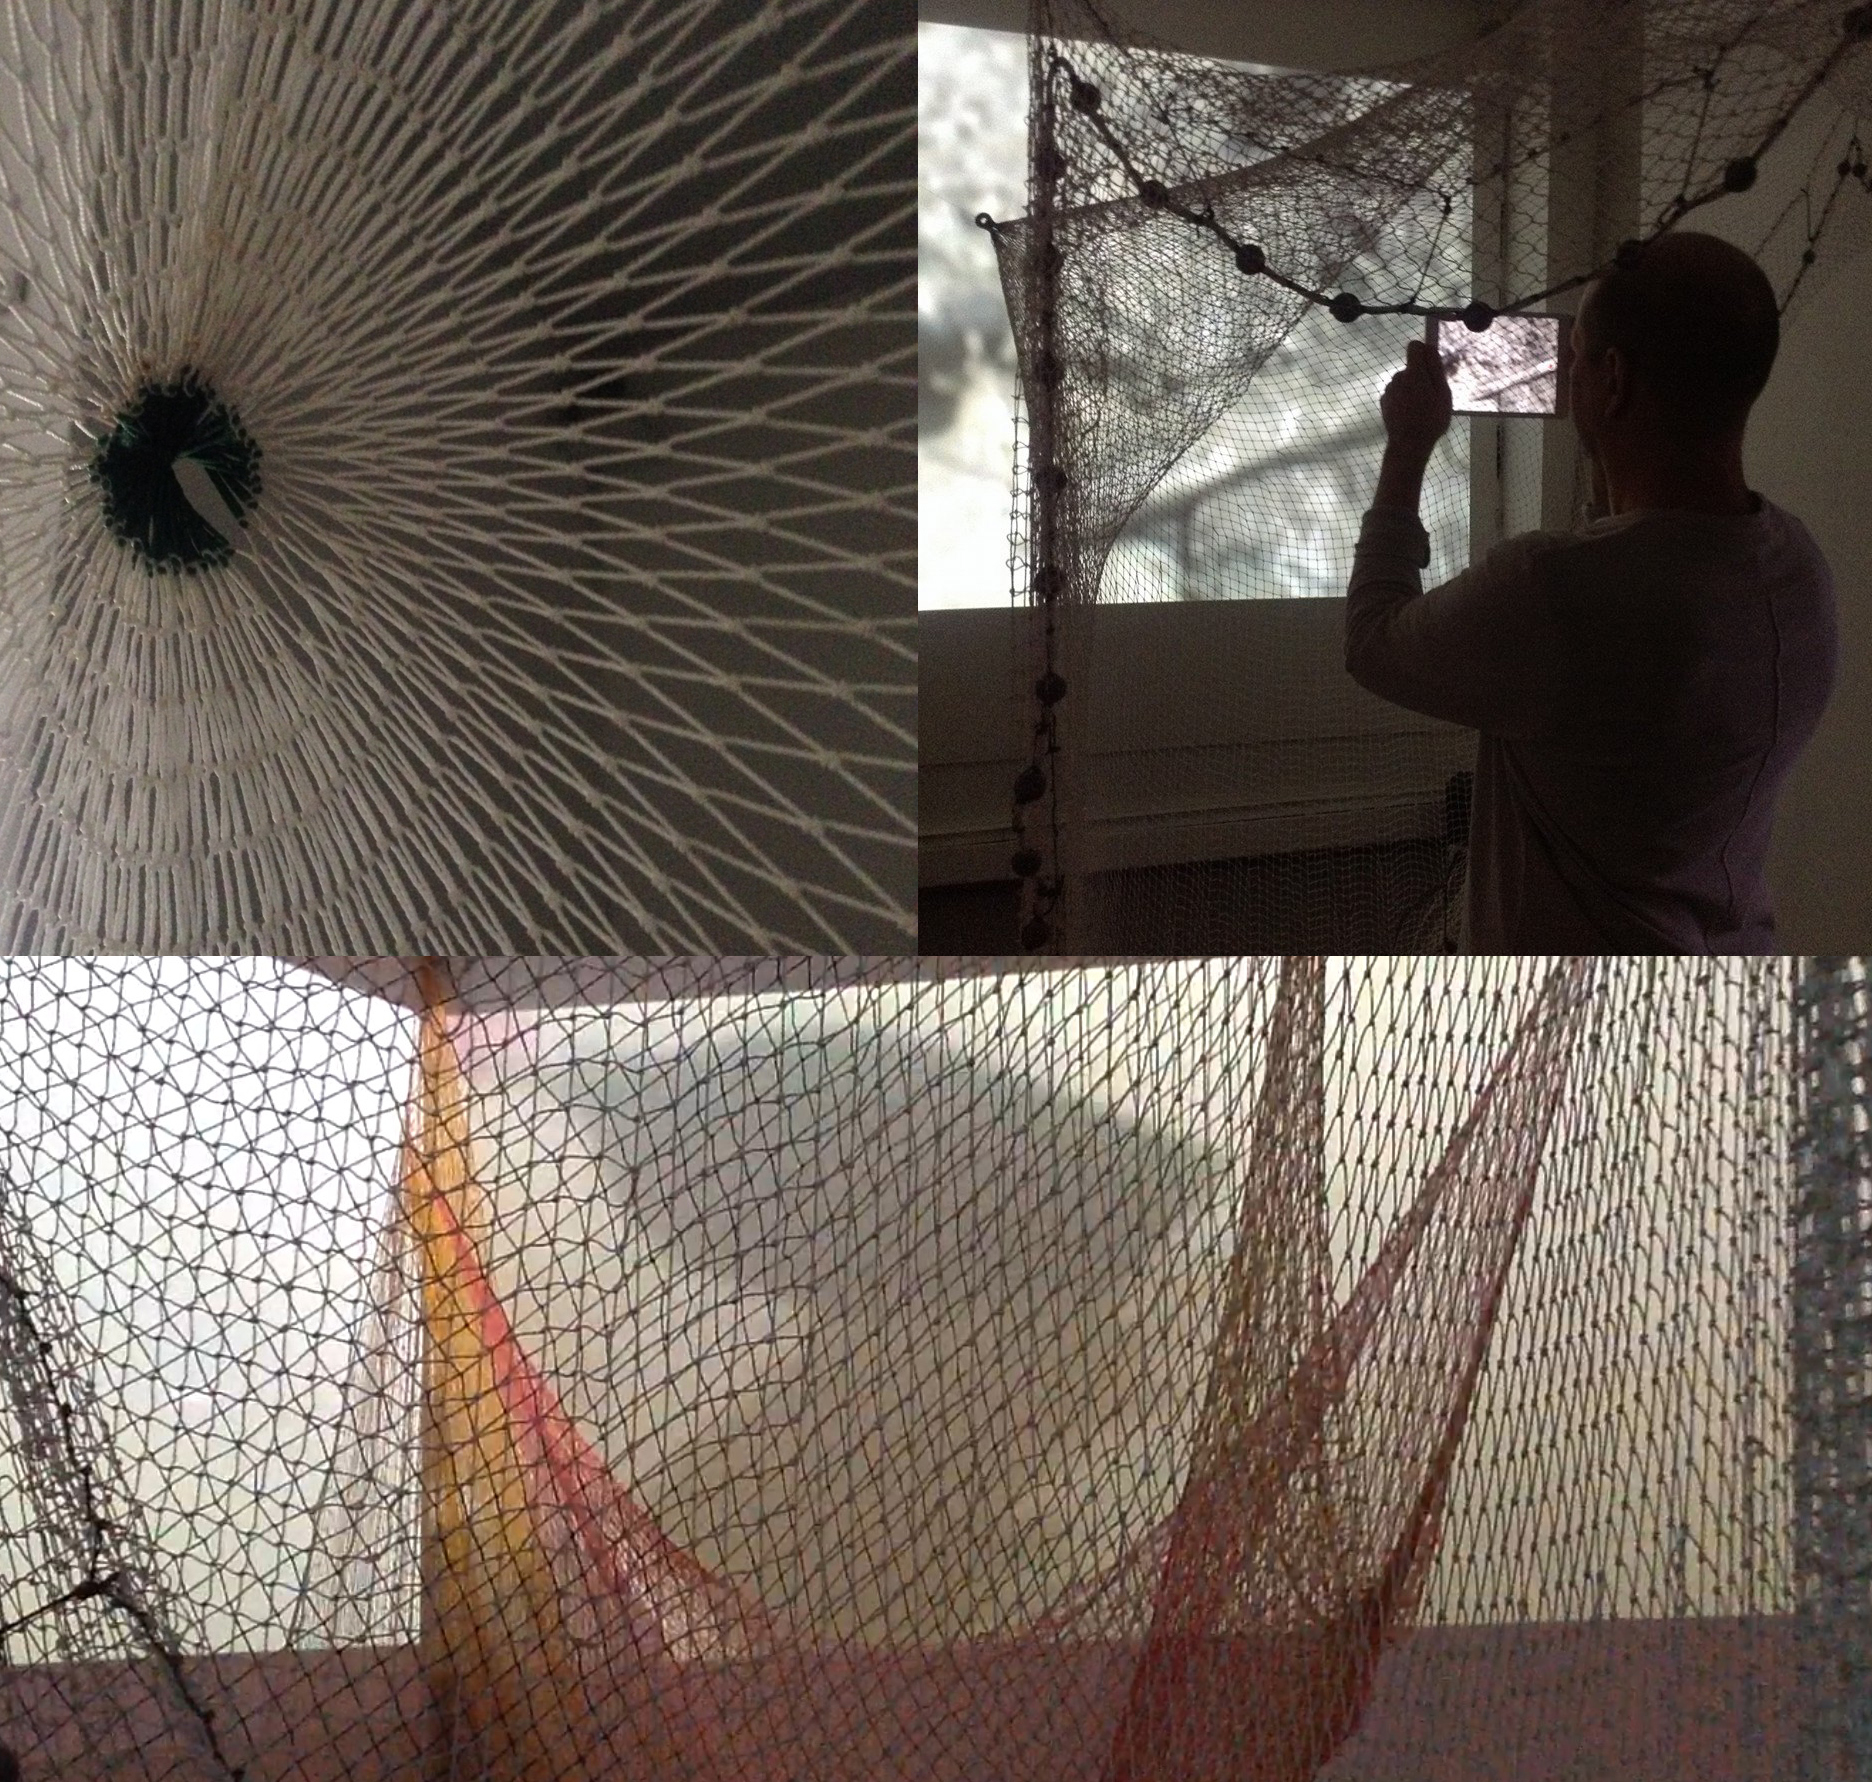 Capasso+Keller+Tinajero, InMesh (2014) Multimedia Installation, MediaNoche Gallery, Harlem, NY. Hand woven nets by Ashuar people from the Amazonian region in Ecuador